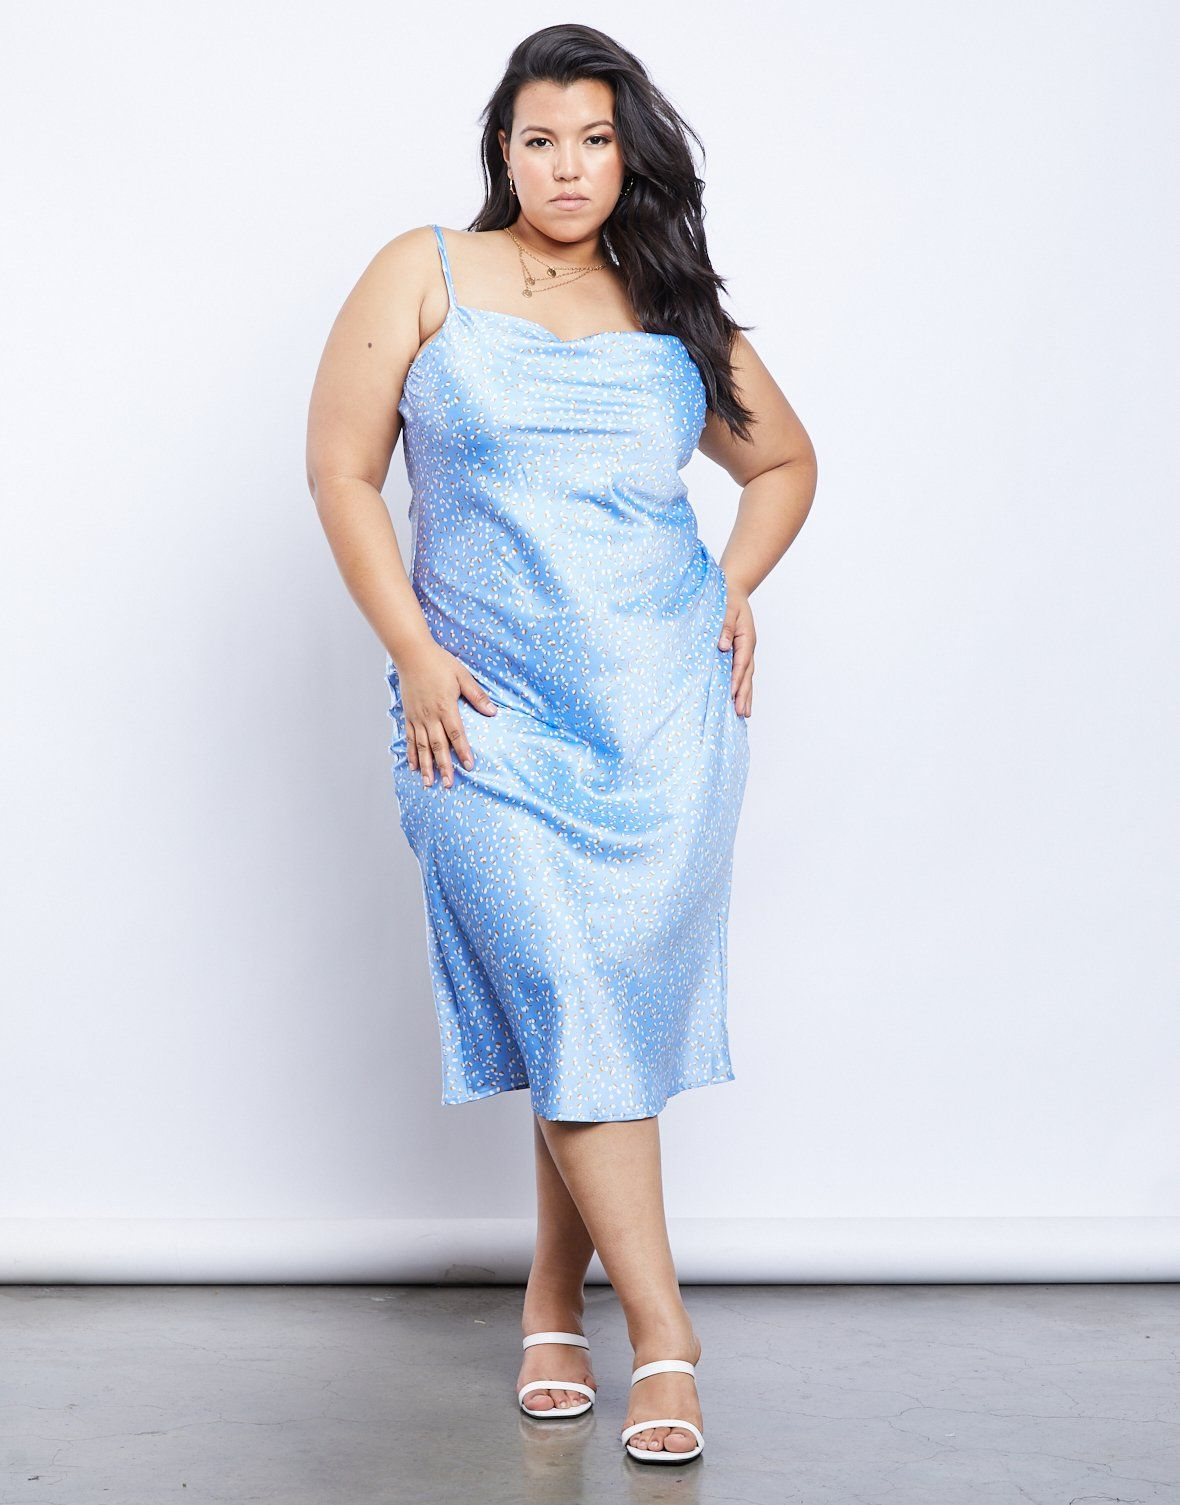 Plus Size Alexcina Slip Dress In 2020 Slip Dress Slip Dress Outfit Dresses